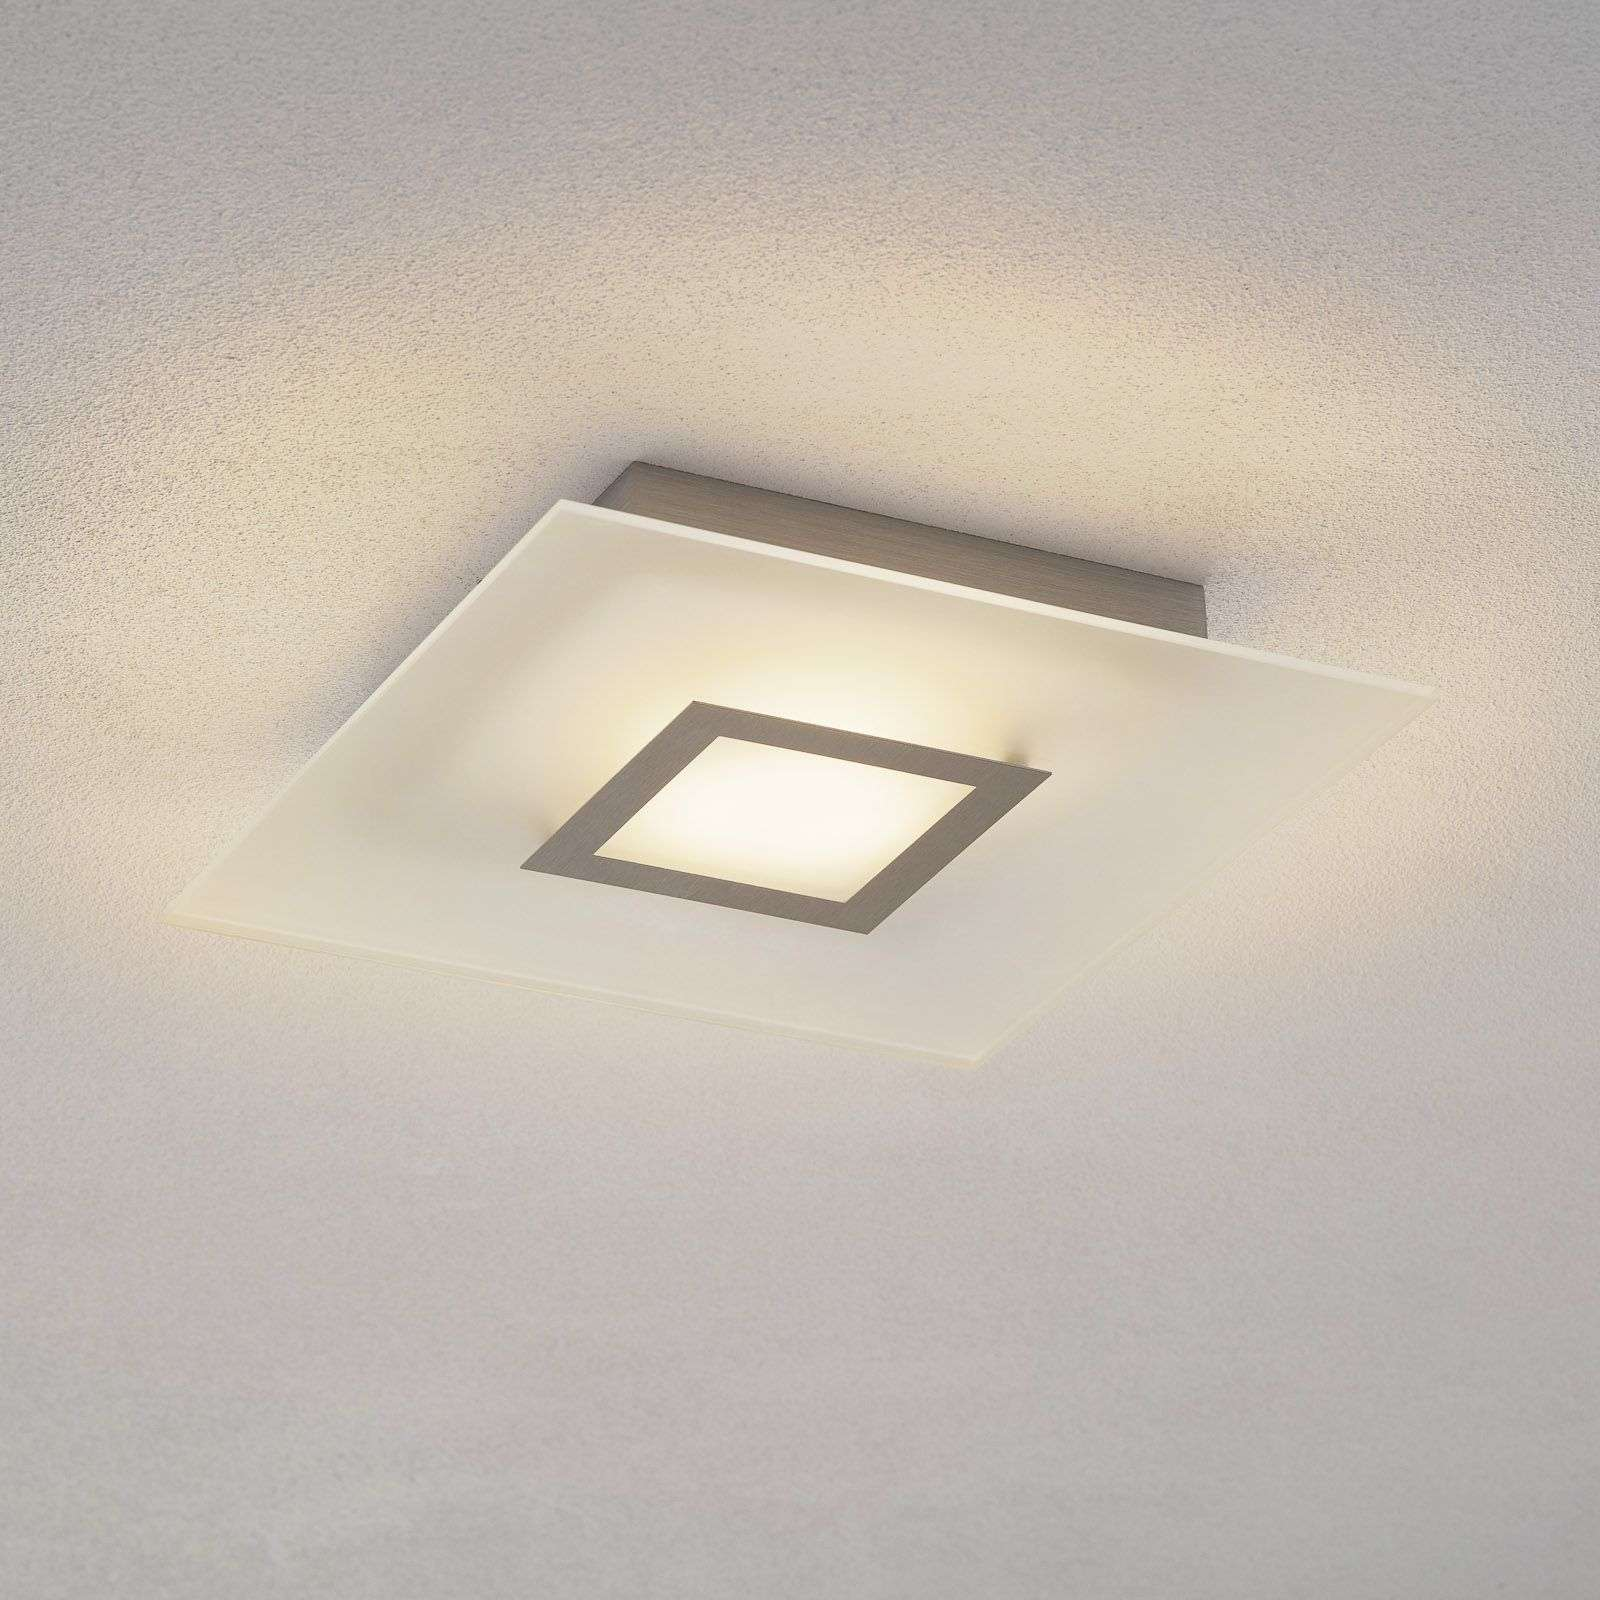 Flat - plafonnier LED carré à intensité variable